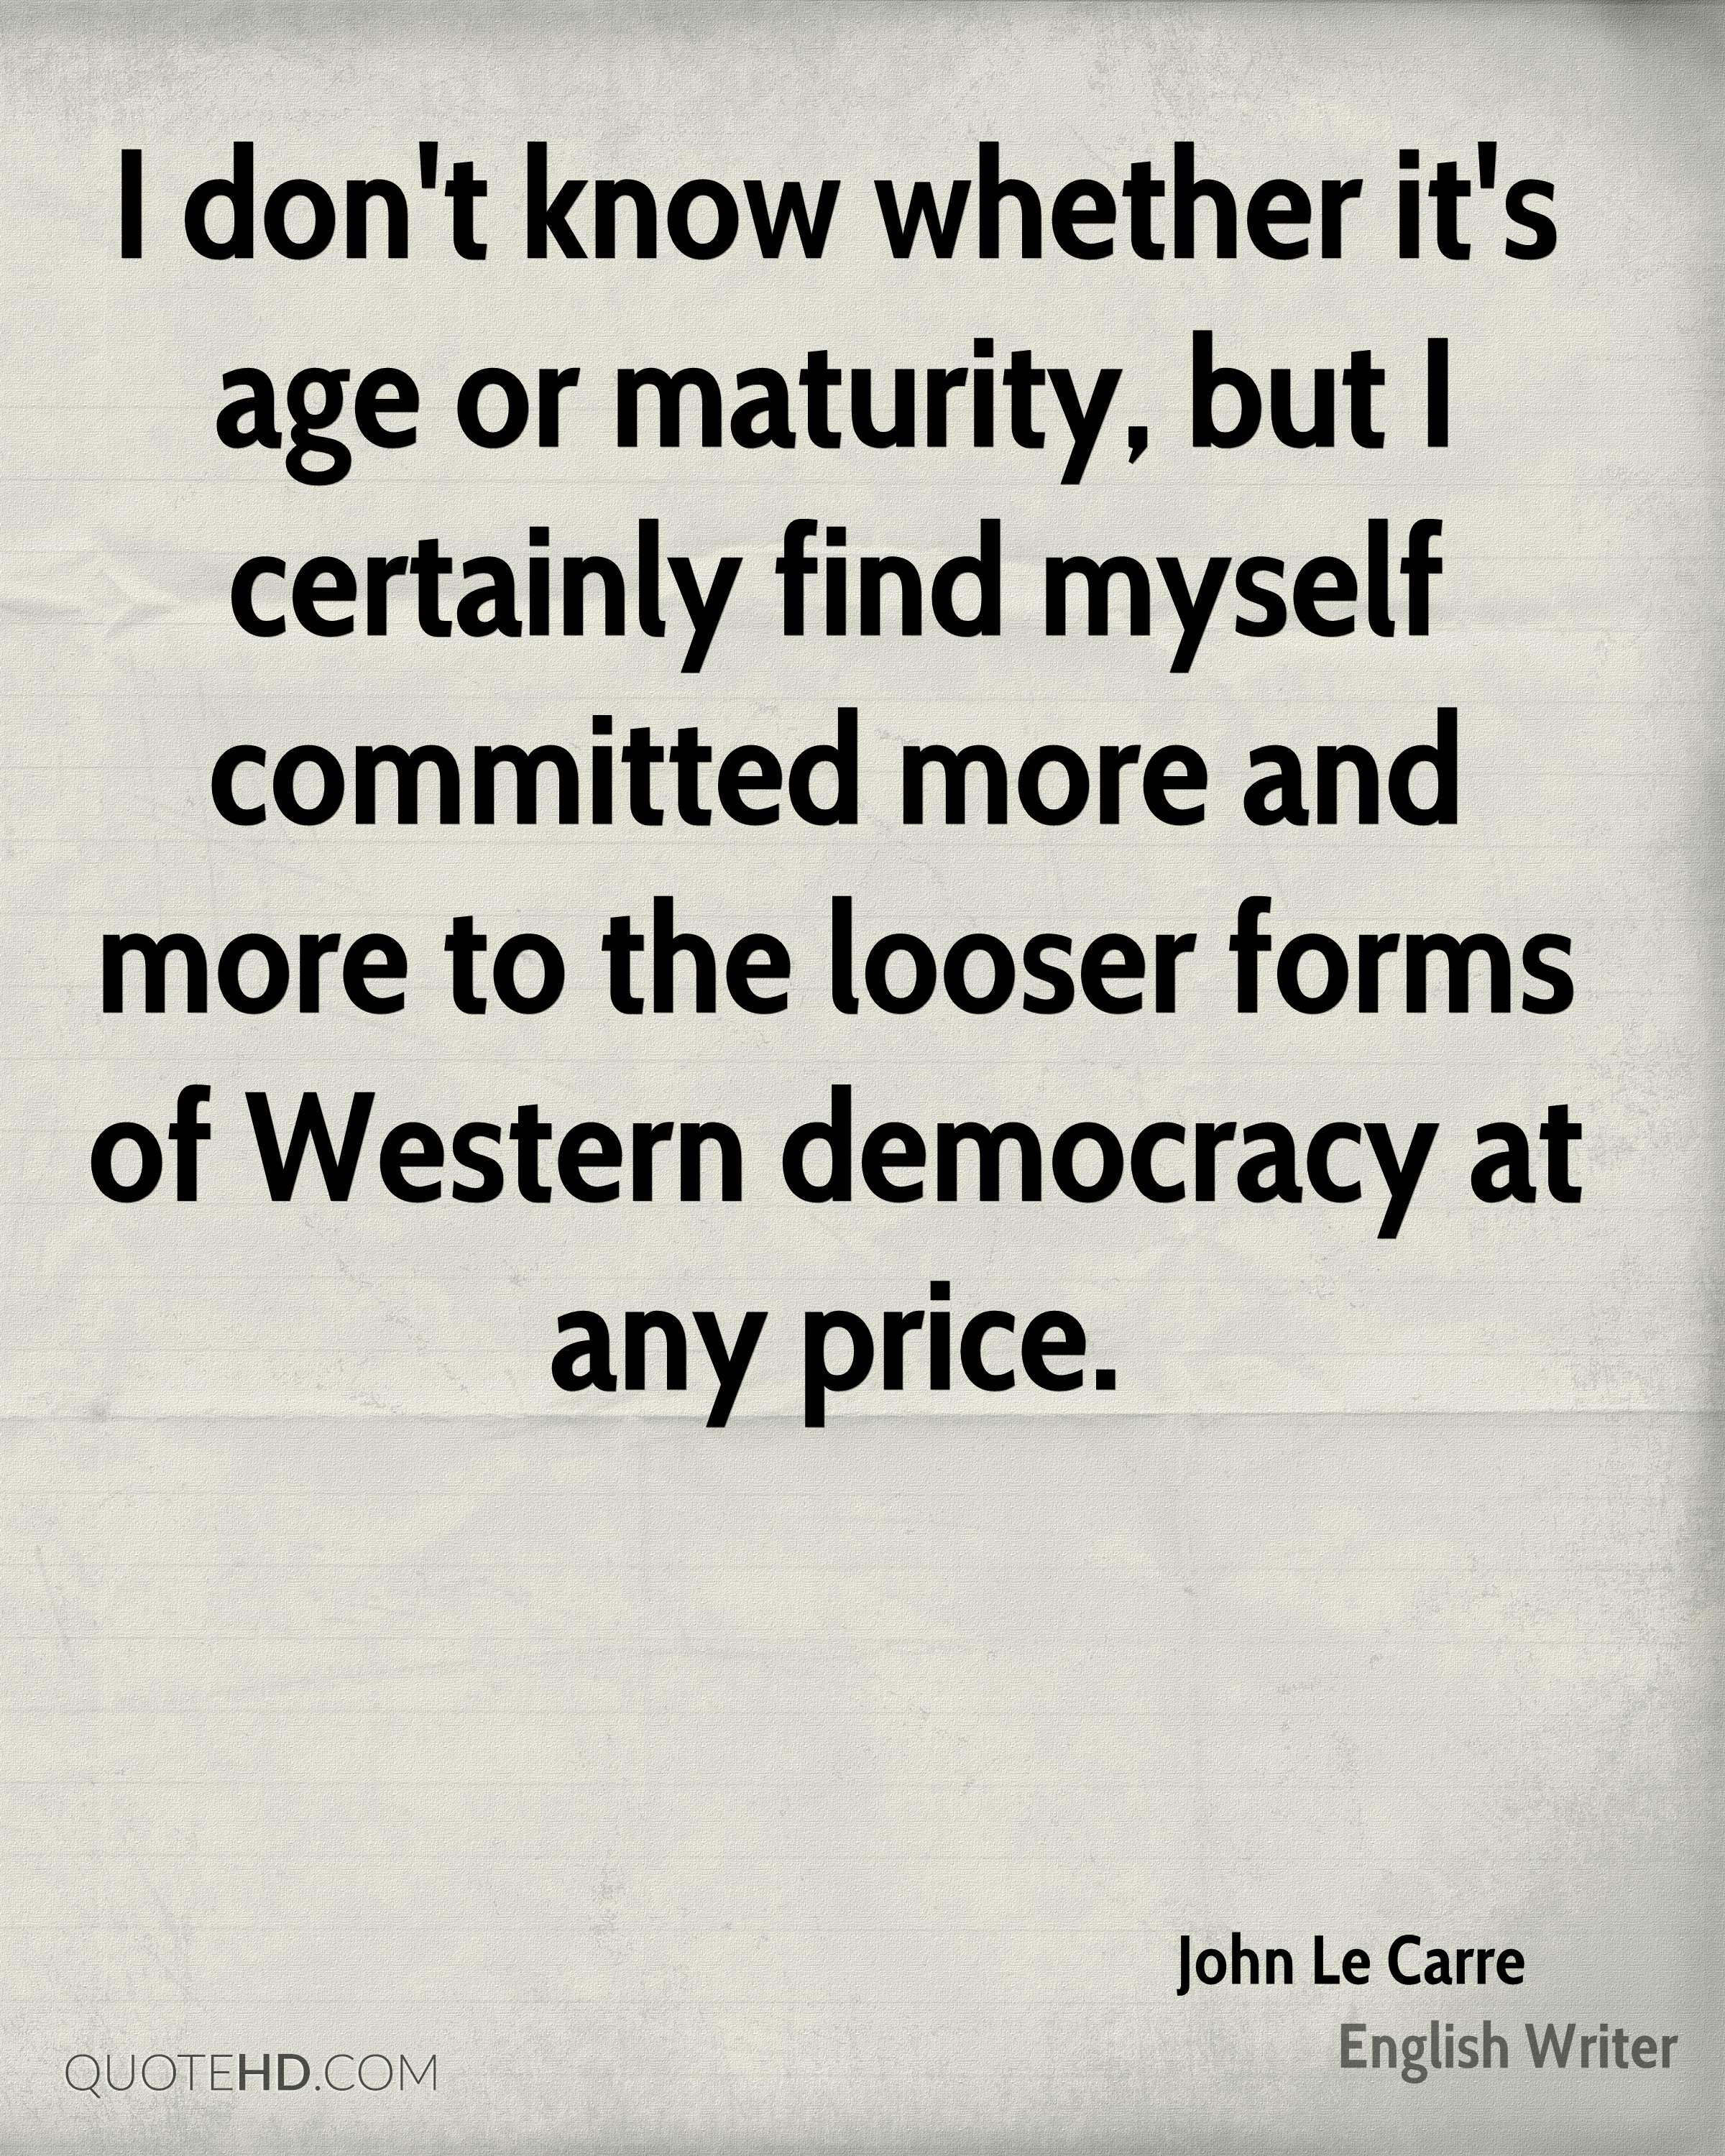 I don't know whether it's age or maturity, but I certainly find myself committed more and more to the looser forms of Western democracy at any price.